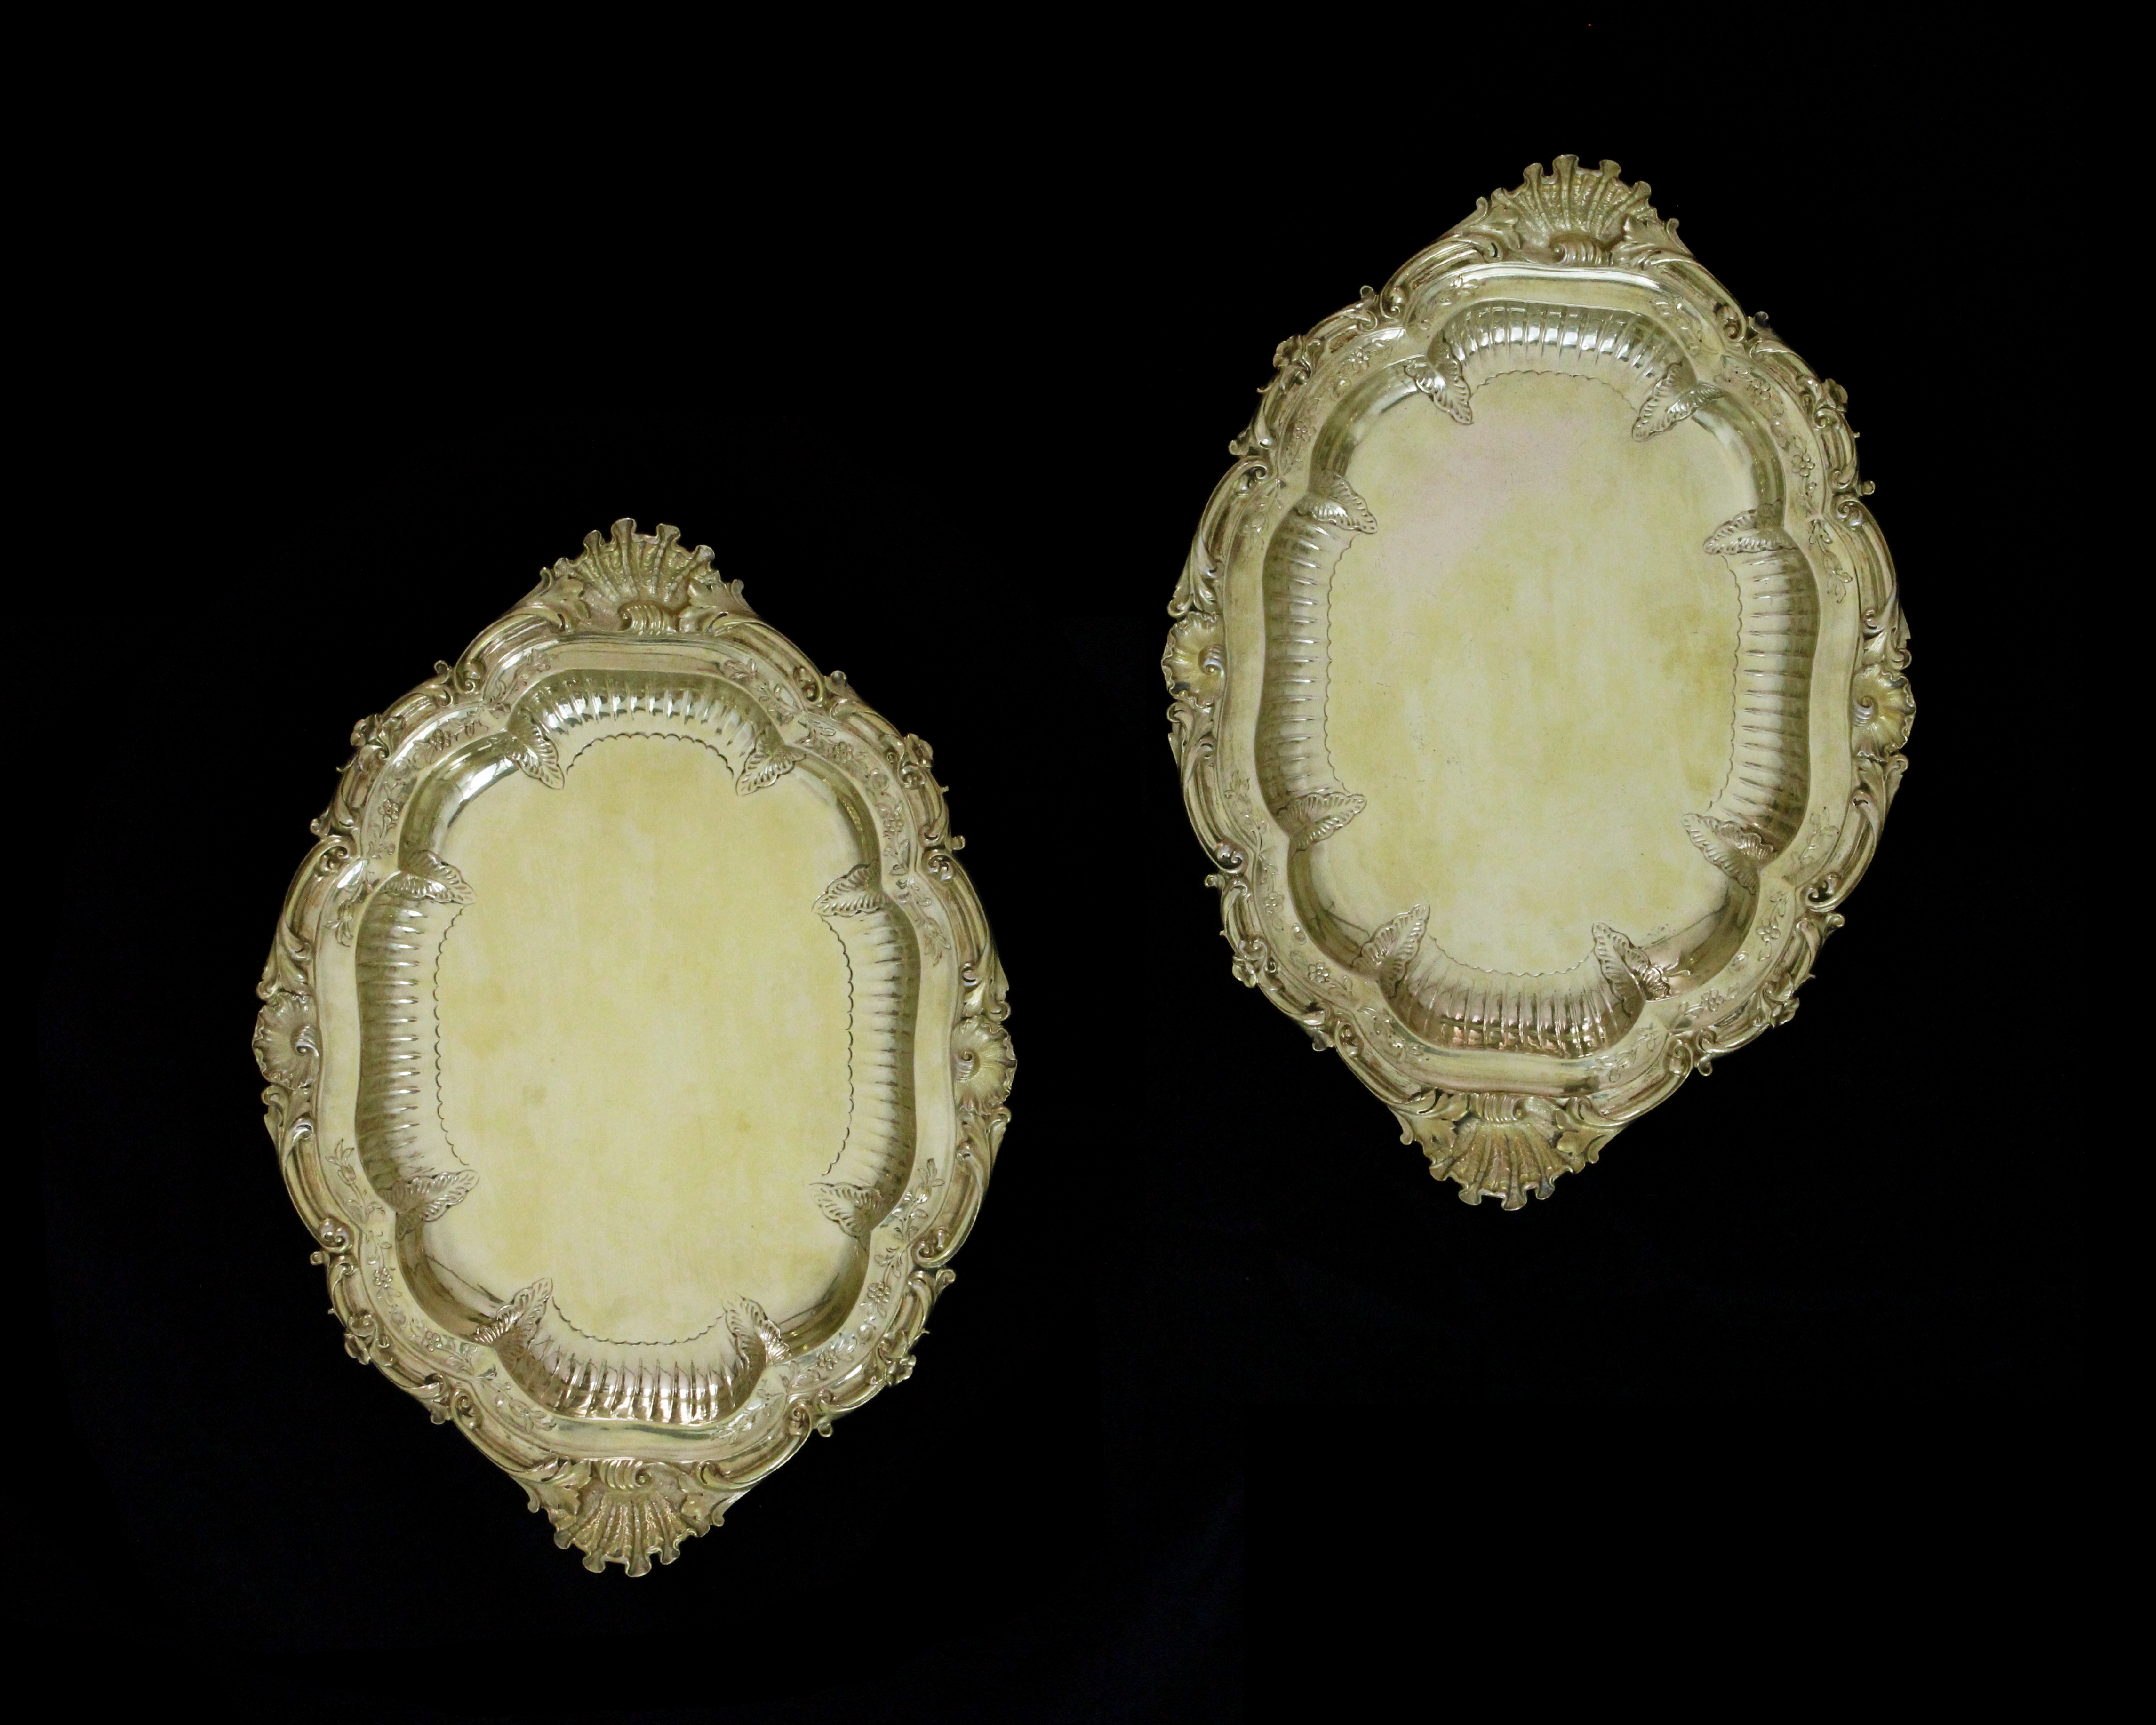 A pair of antique George IV Sterling Silver gilt serving dishes by Paul Storr, London 1827 each of